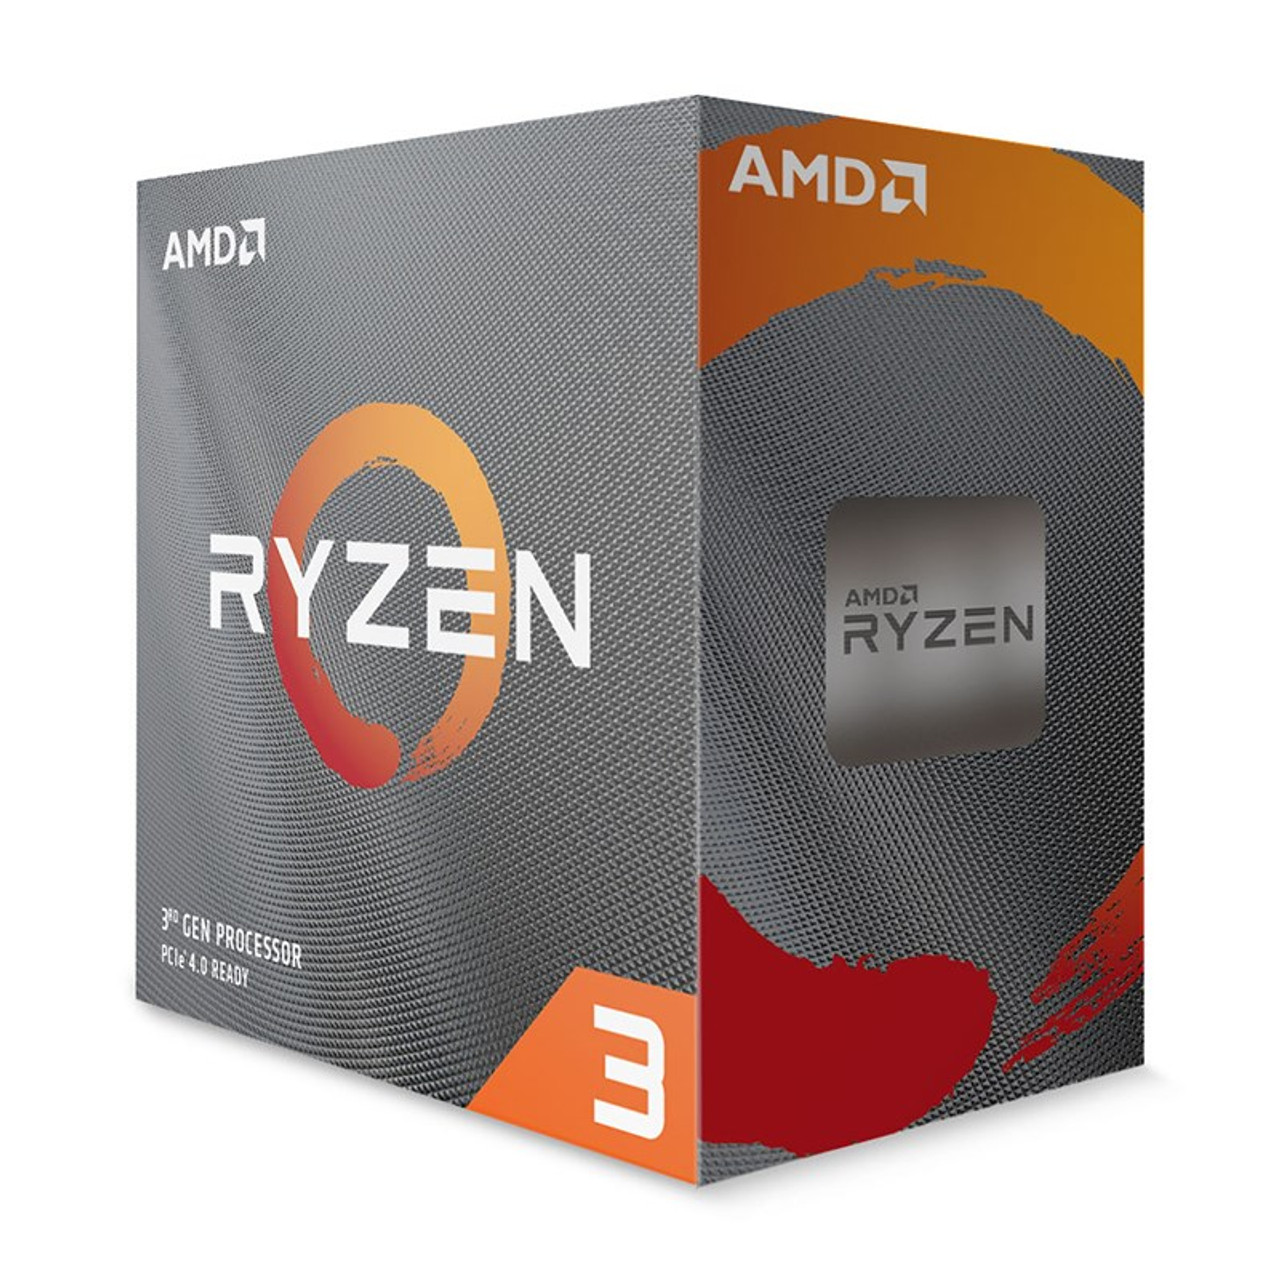 Image for AMD Ryzen 3 3300X 4 Core Socket AM4 3.8GHz CPU Processor + Wraith Stealth Cooler CX Computer Superstore